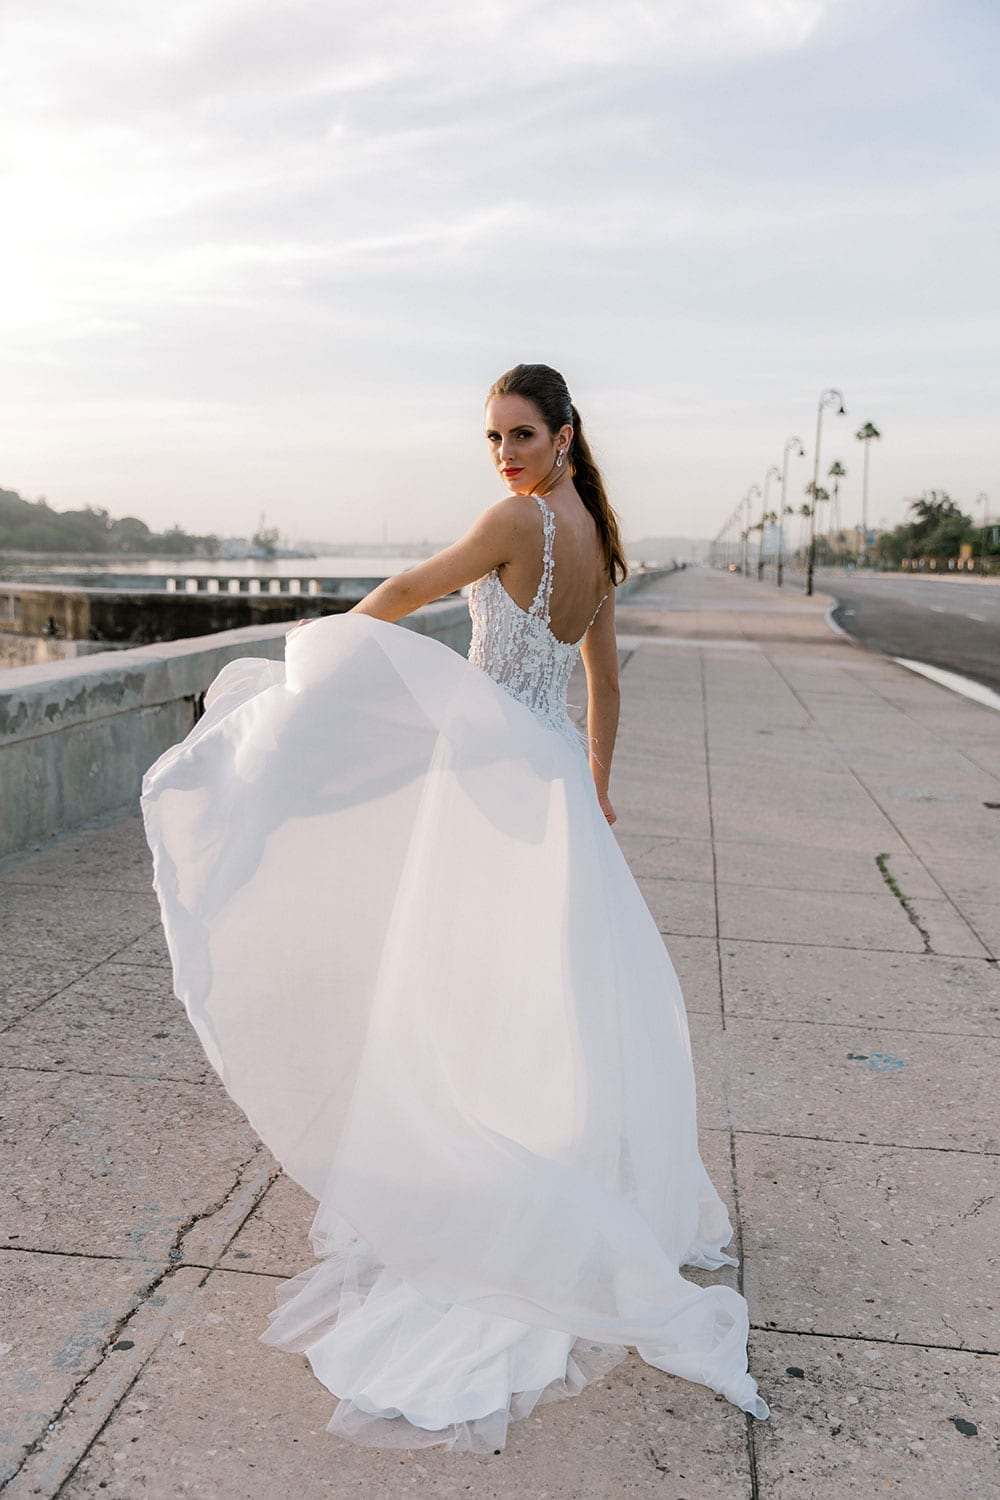 Model wearing Vinka Design Iris Wedding Dress, a Silk Chiffon Wedding Gown posed on a paved walkway in Havana raising layers of dress in the breeze